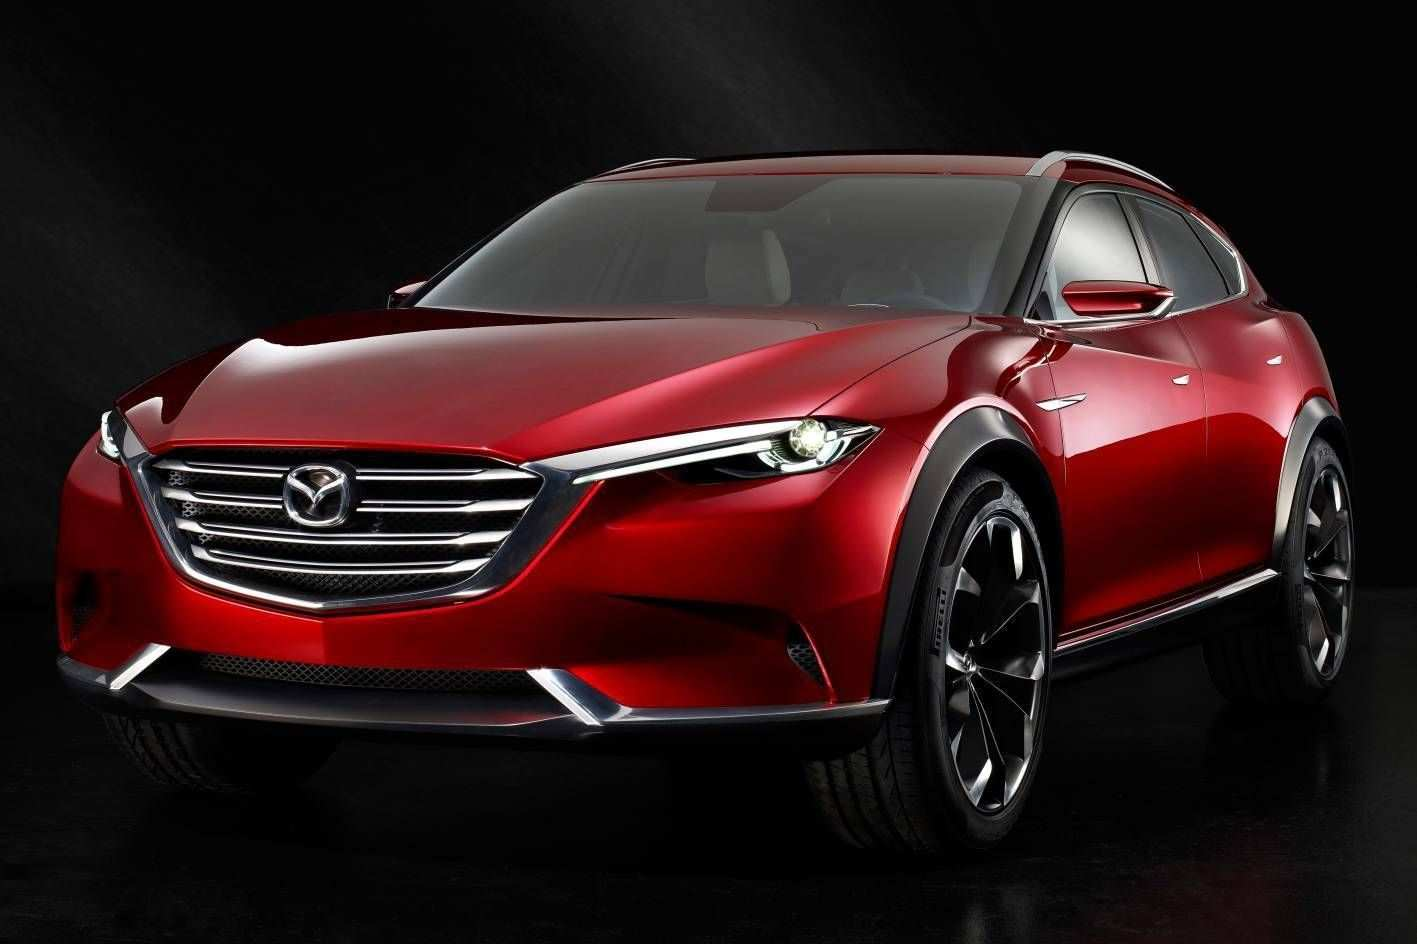 66 Great 2020 Mazda CX 9s Images for 2020 Mazda CX 9s